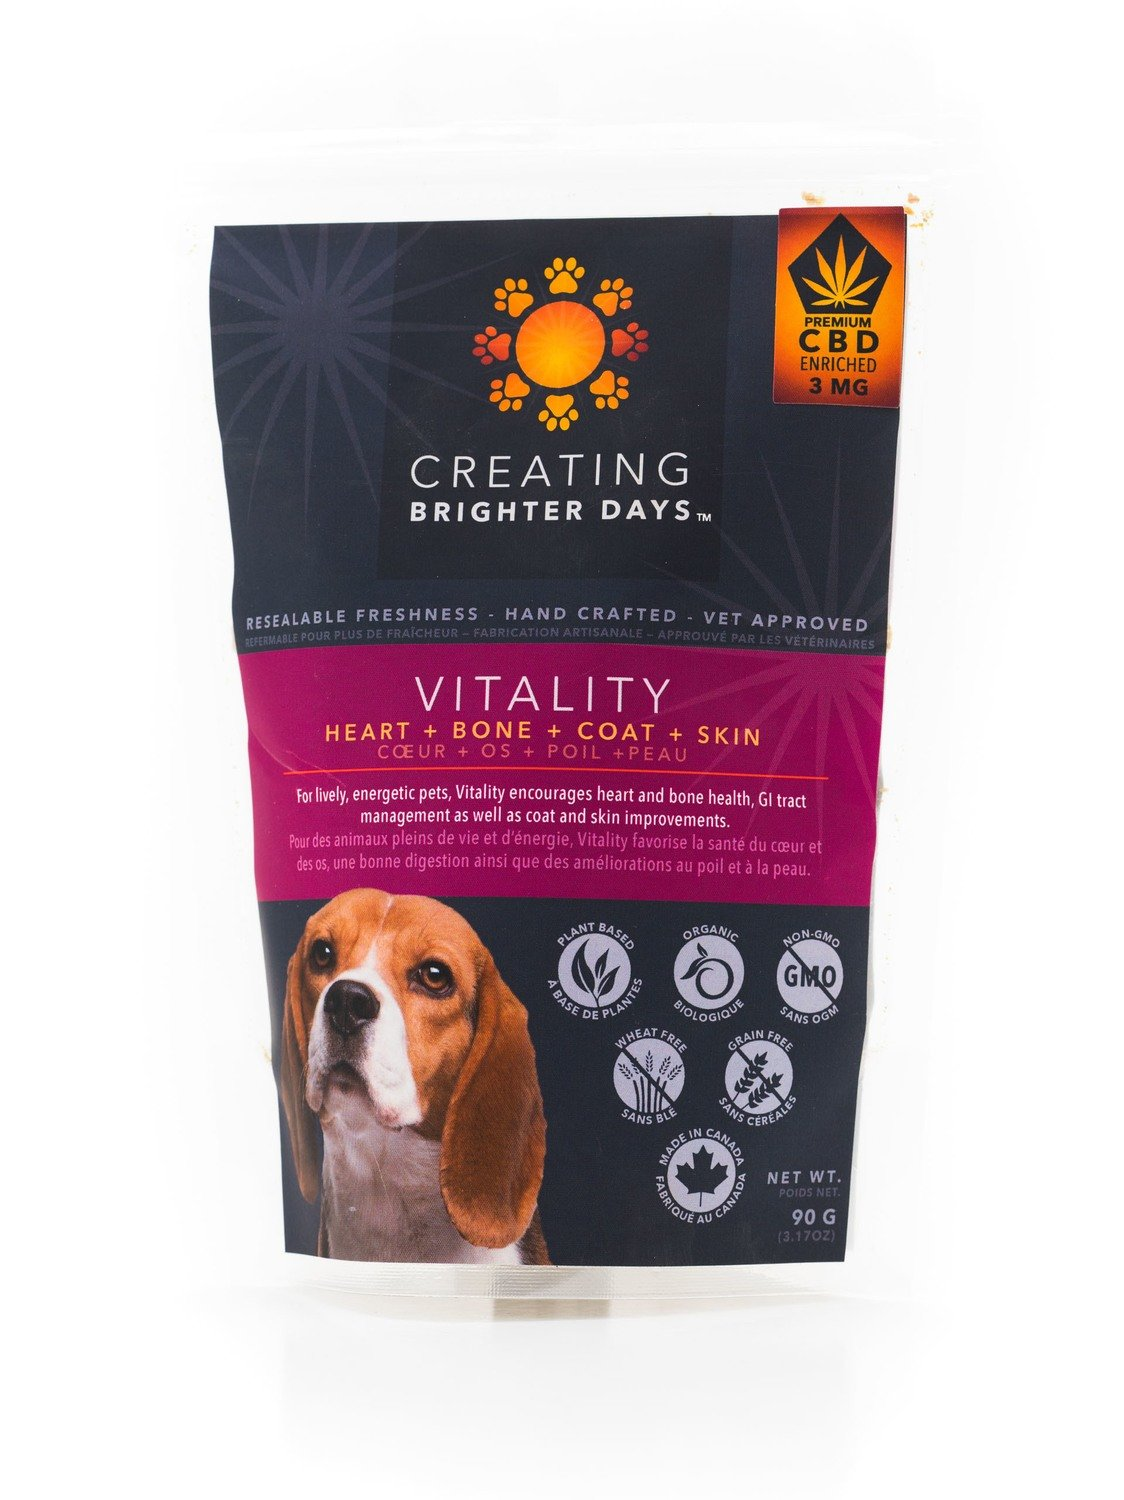 Vitality Enriched Treats (3mg CBD) by Creating Brighter Days